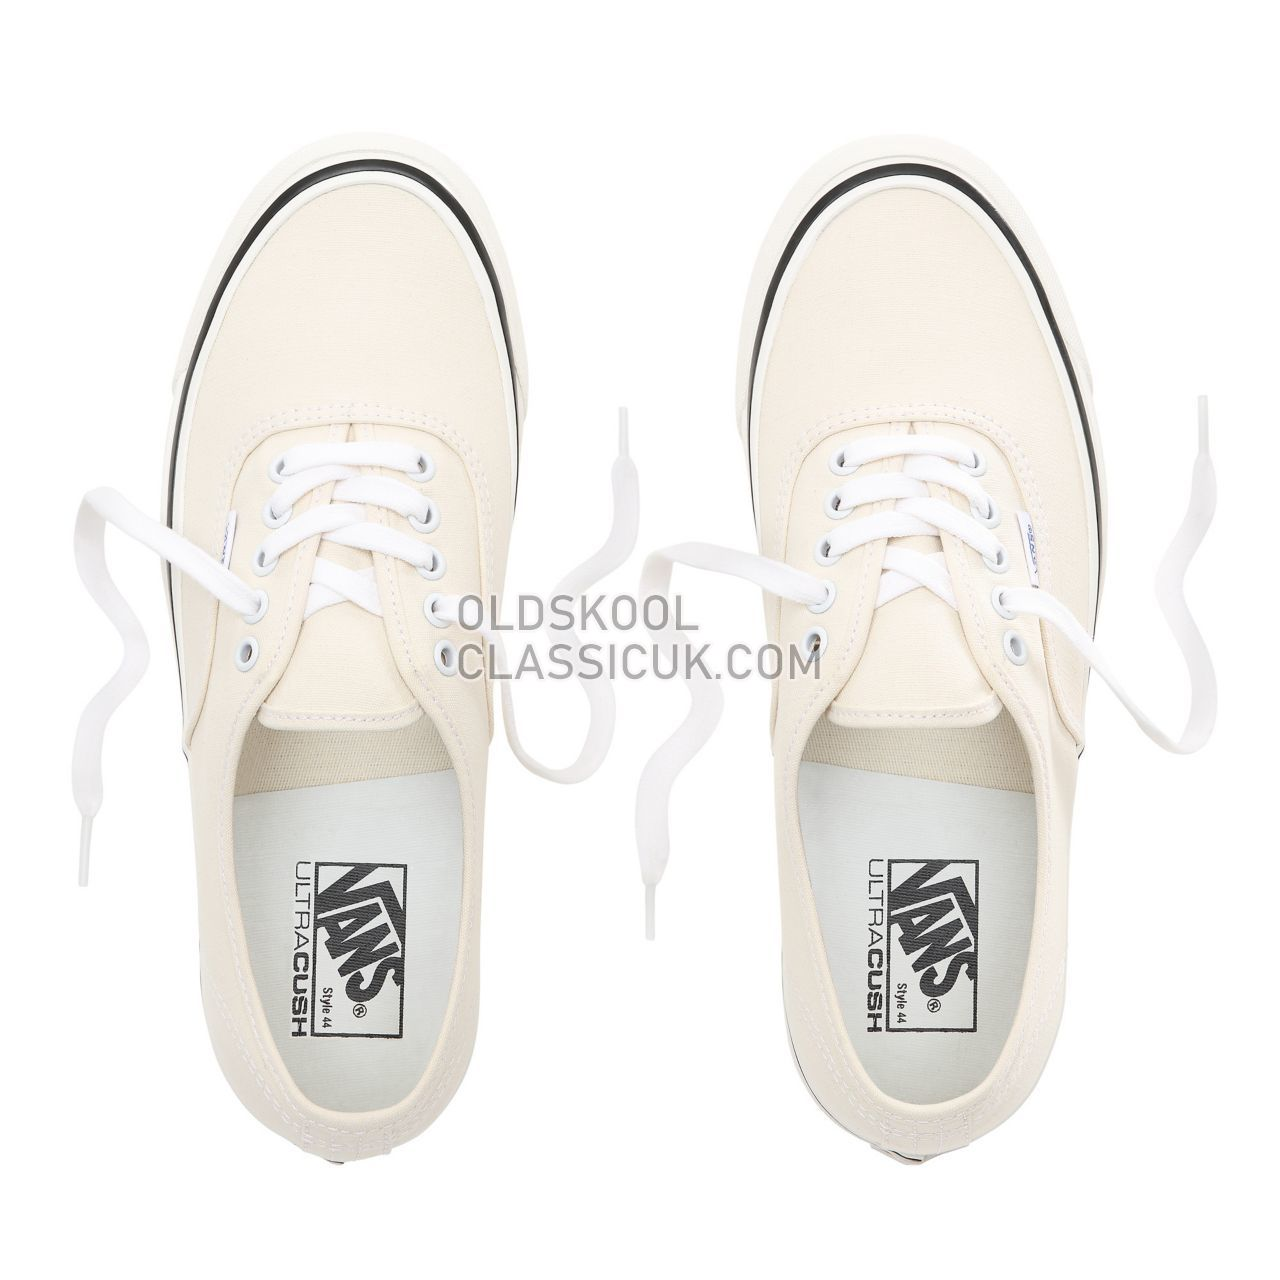 Vans Anaheim Authentic 44 Sneakers Mens (Anaheim Factory) Classic White VN0A38ENMR4 Shoes